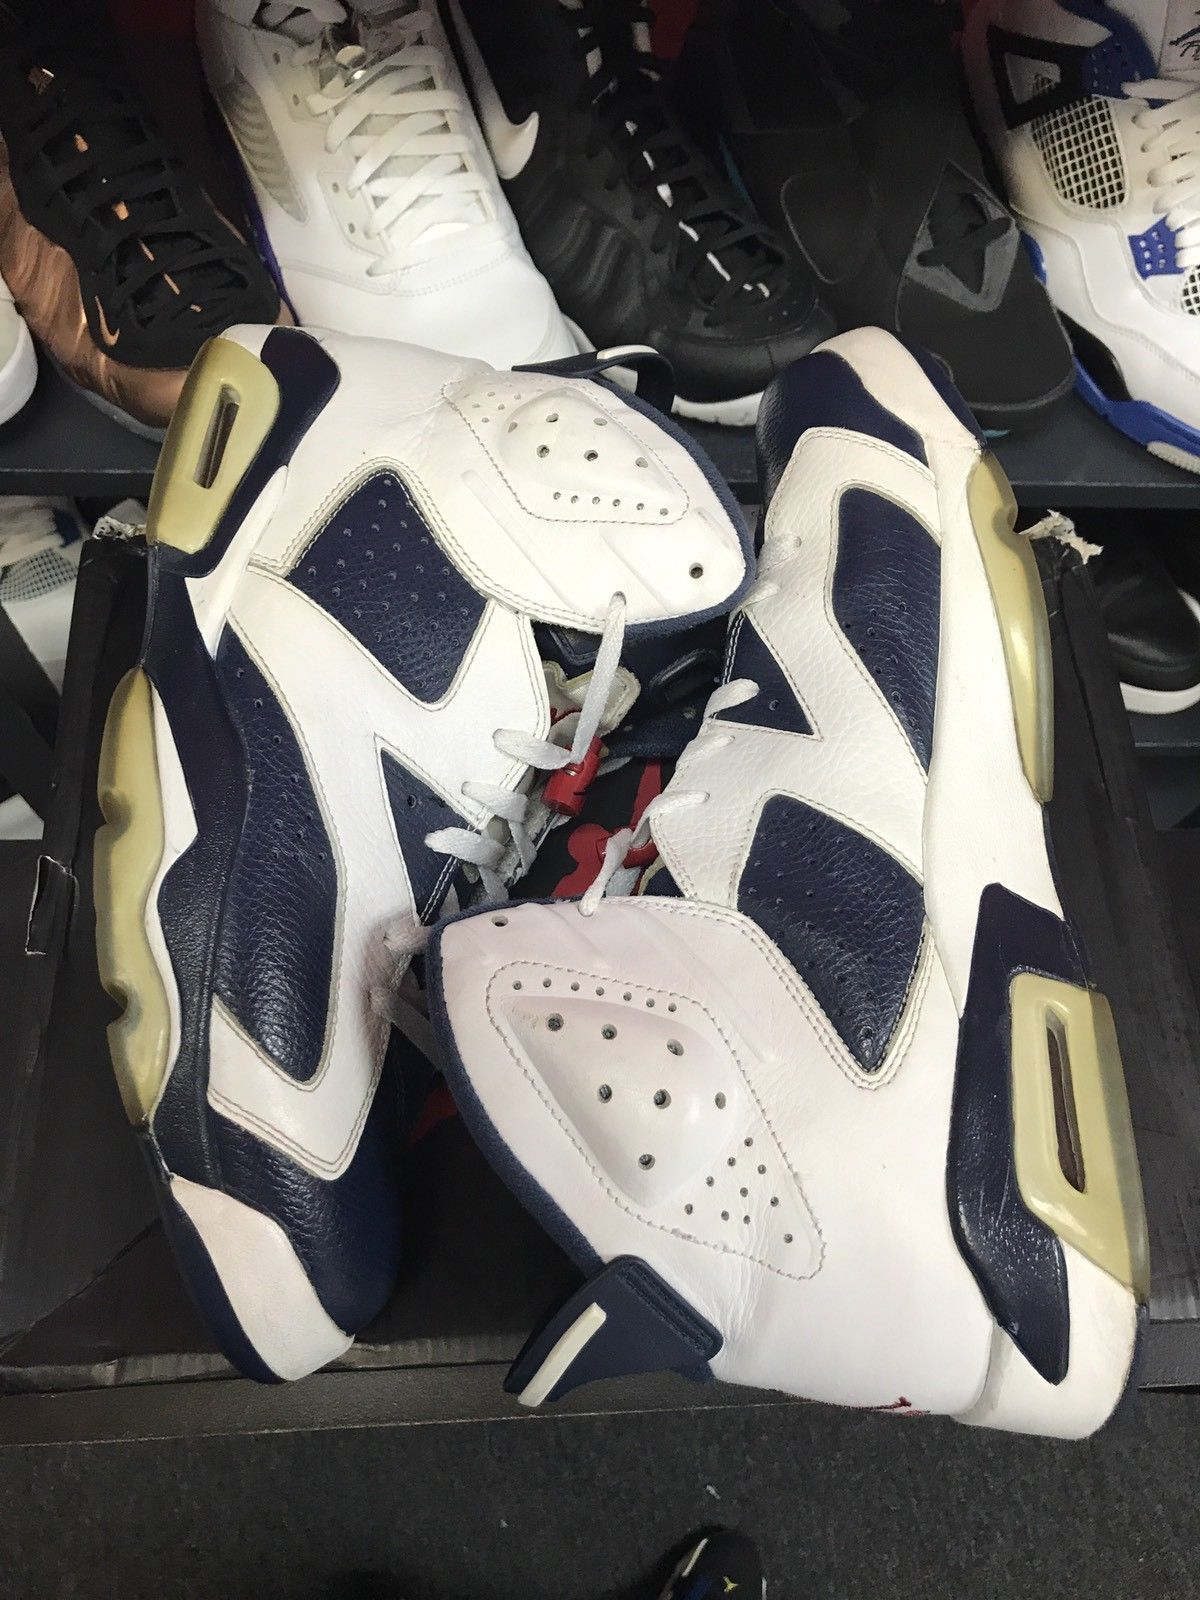 5a033e34bf71 Nike 2012 Air Jordan 6 VI Retro Olympic Navy Red 384664-130 Blue White